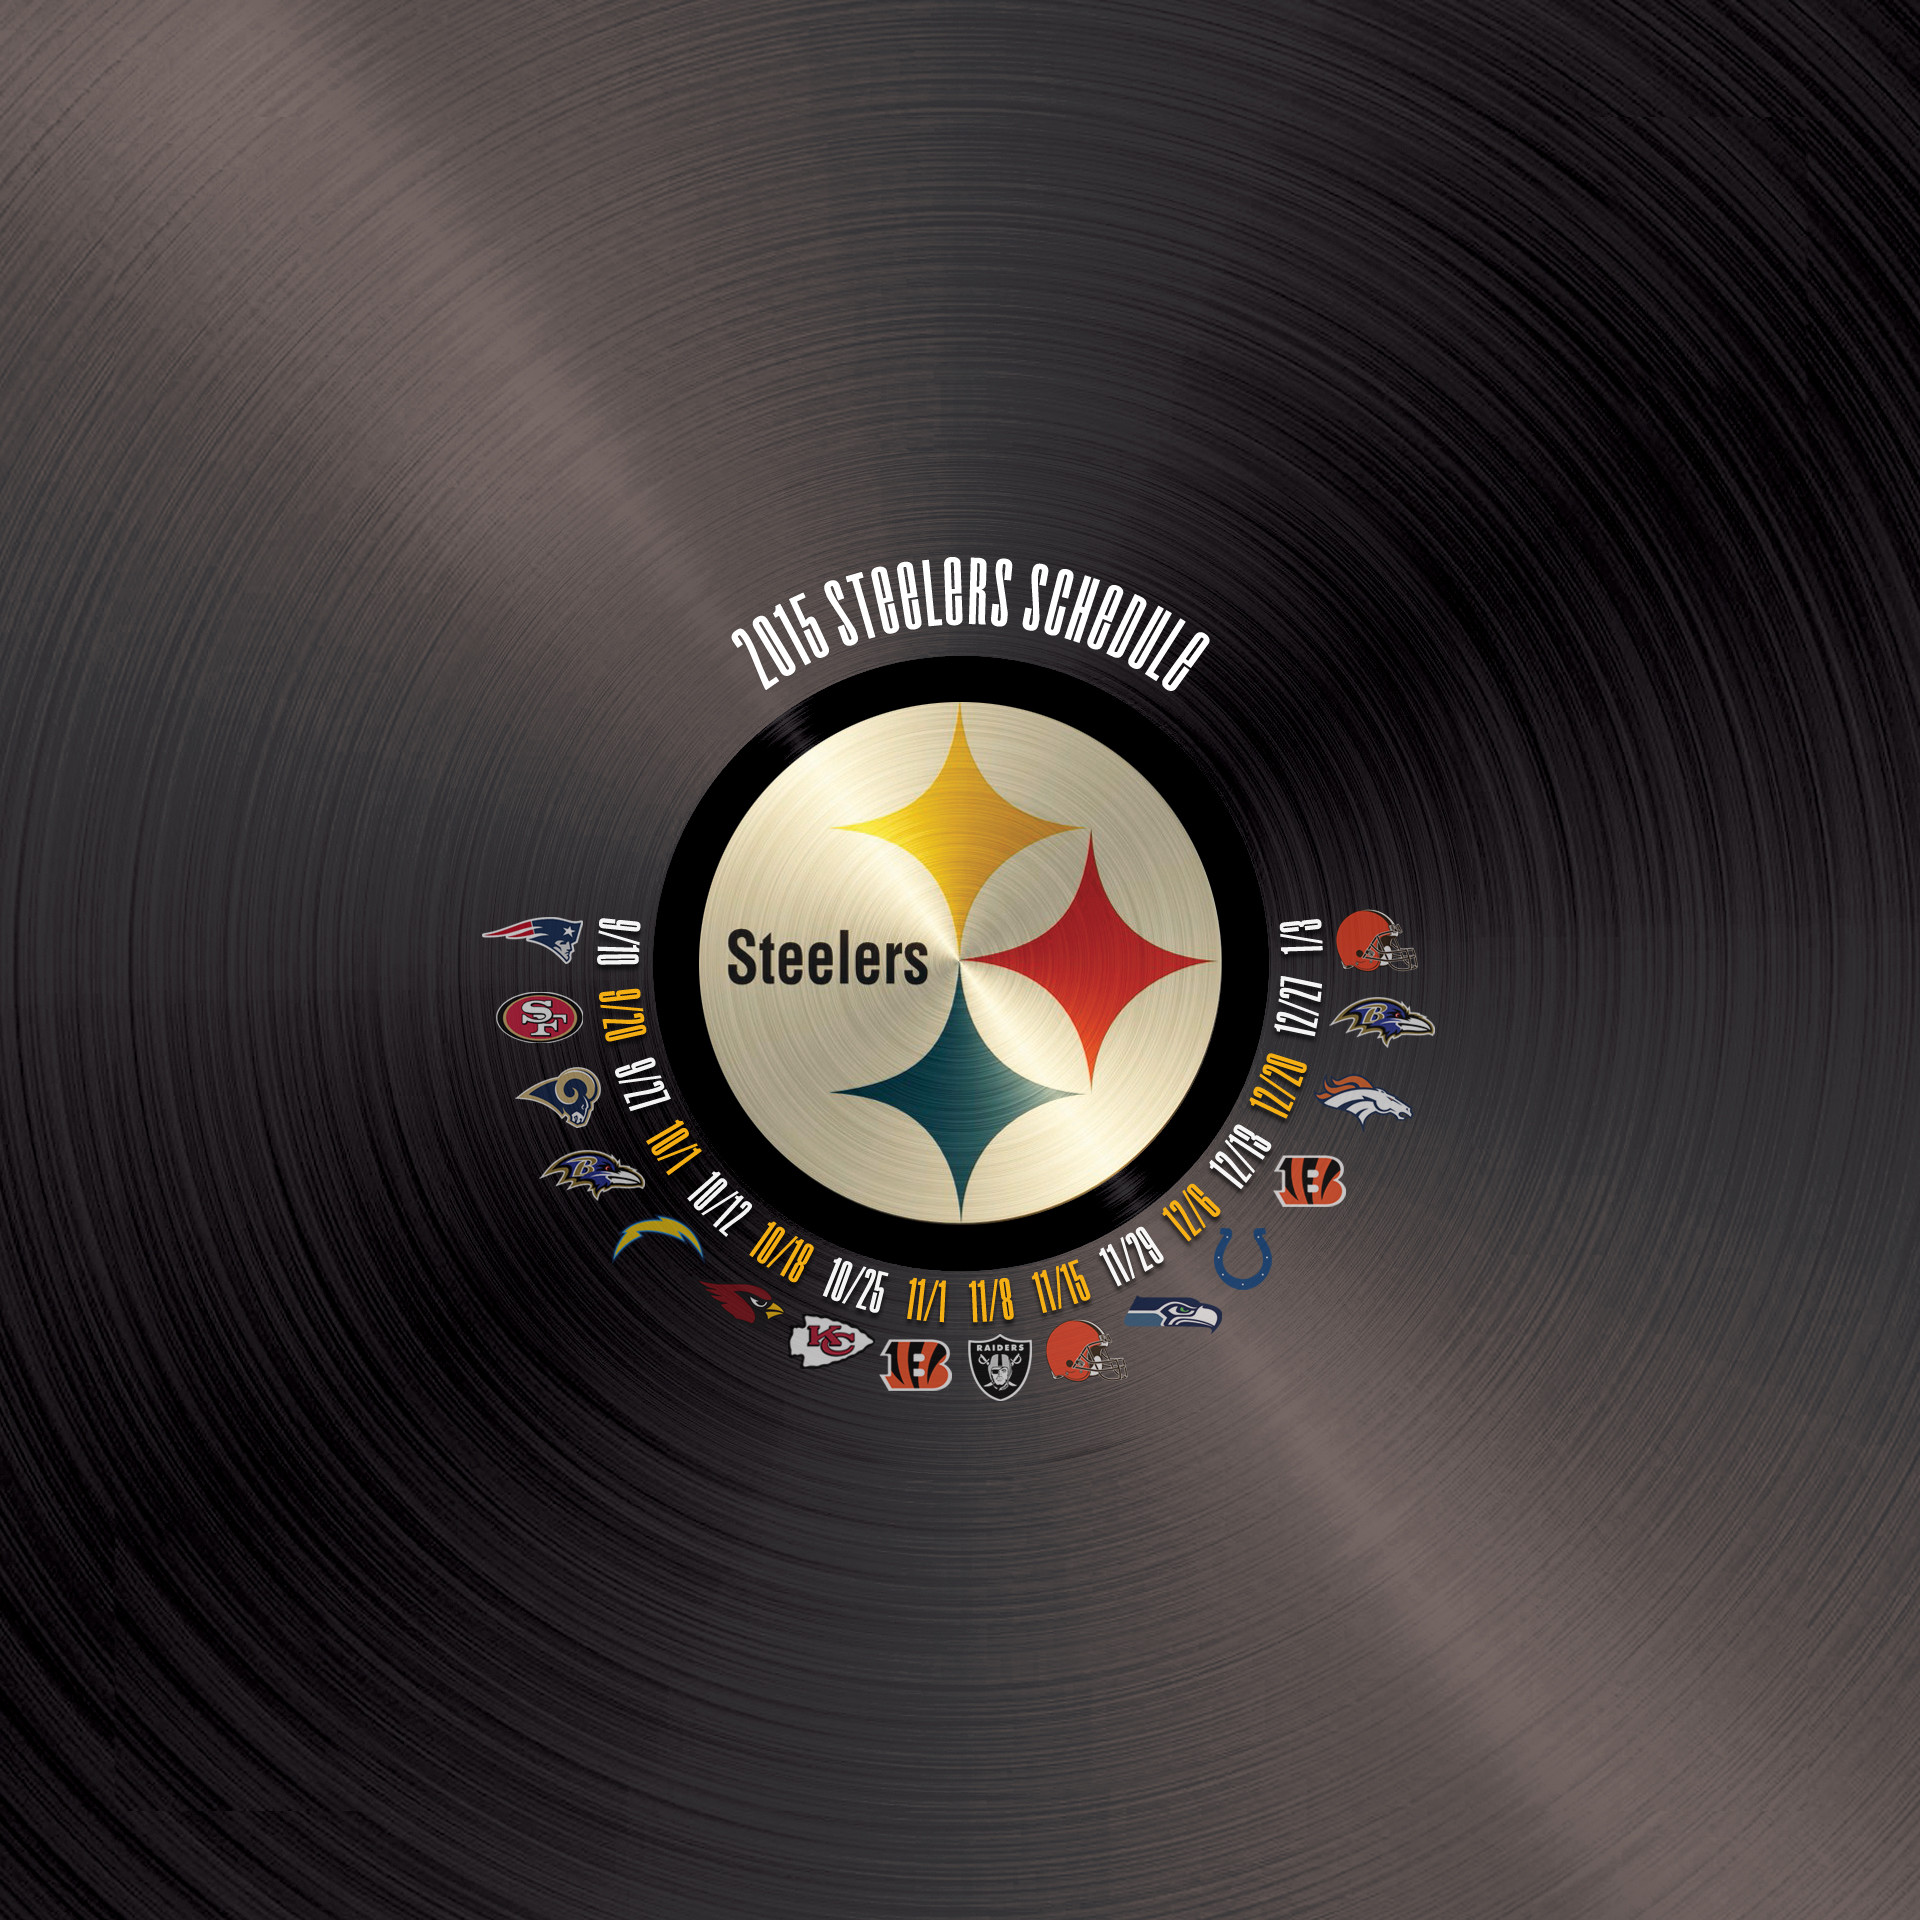 Get the Steelers Schedule on all your devices | Epic Car Wallpapers |  Pinterest | Steelers schedule